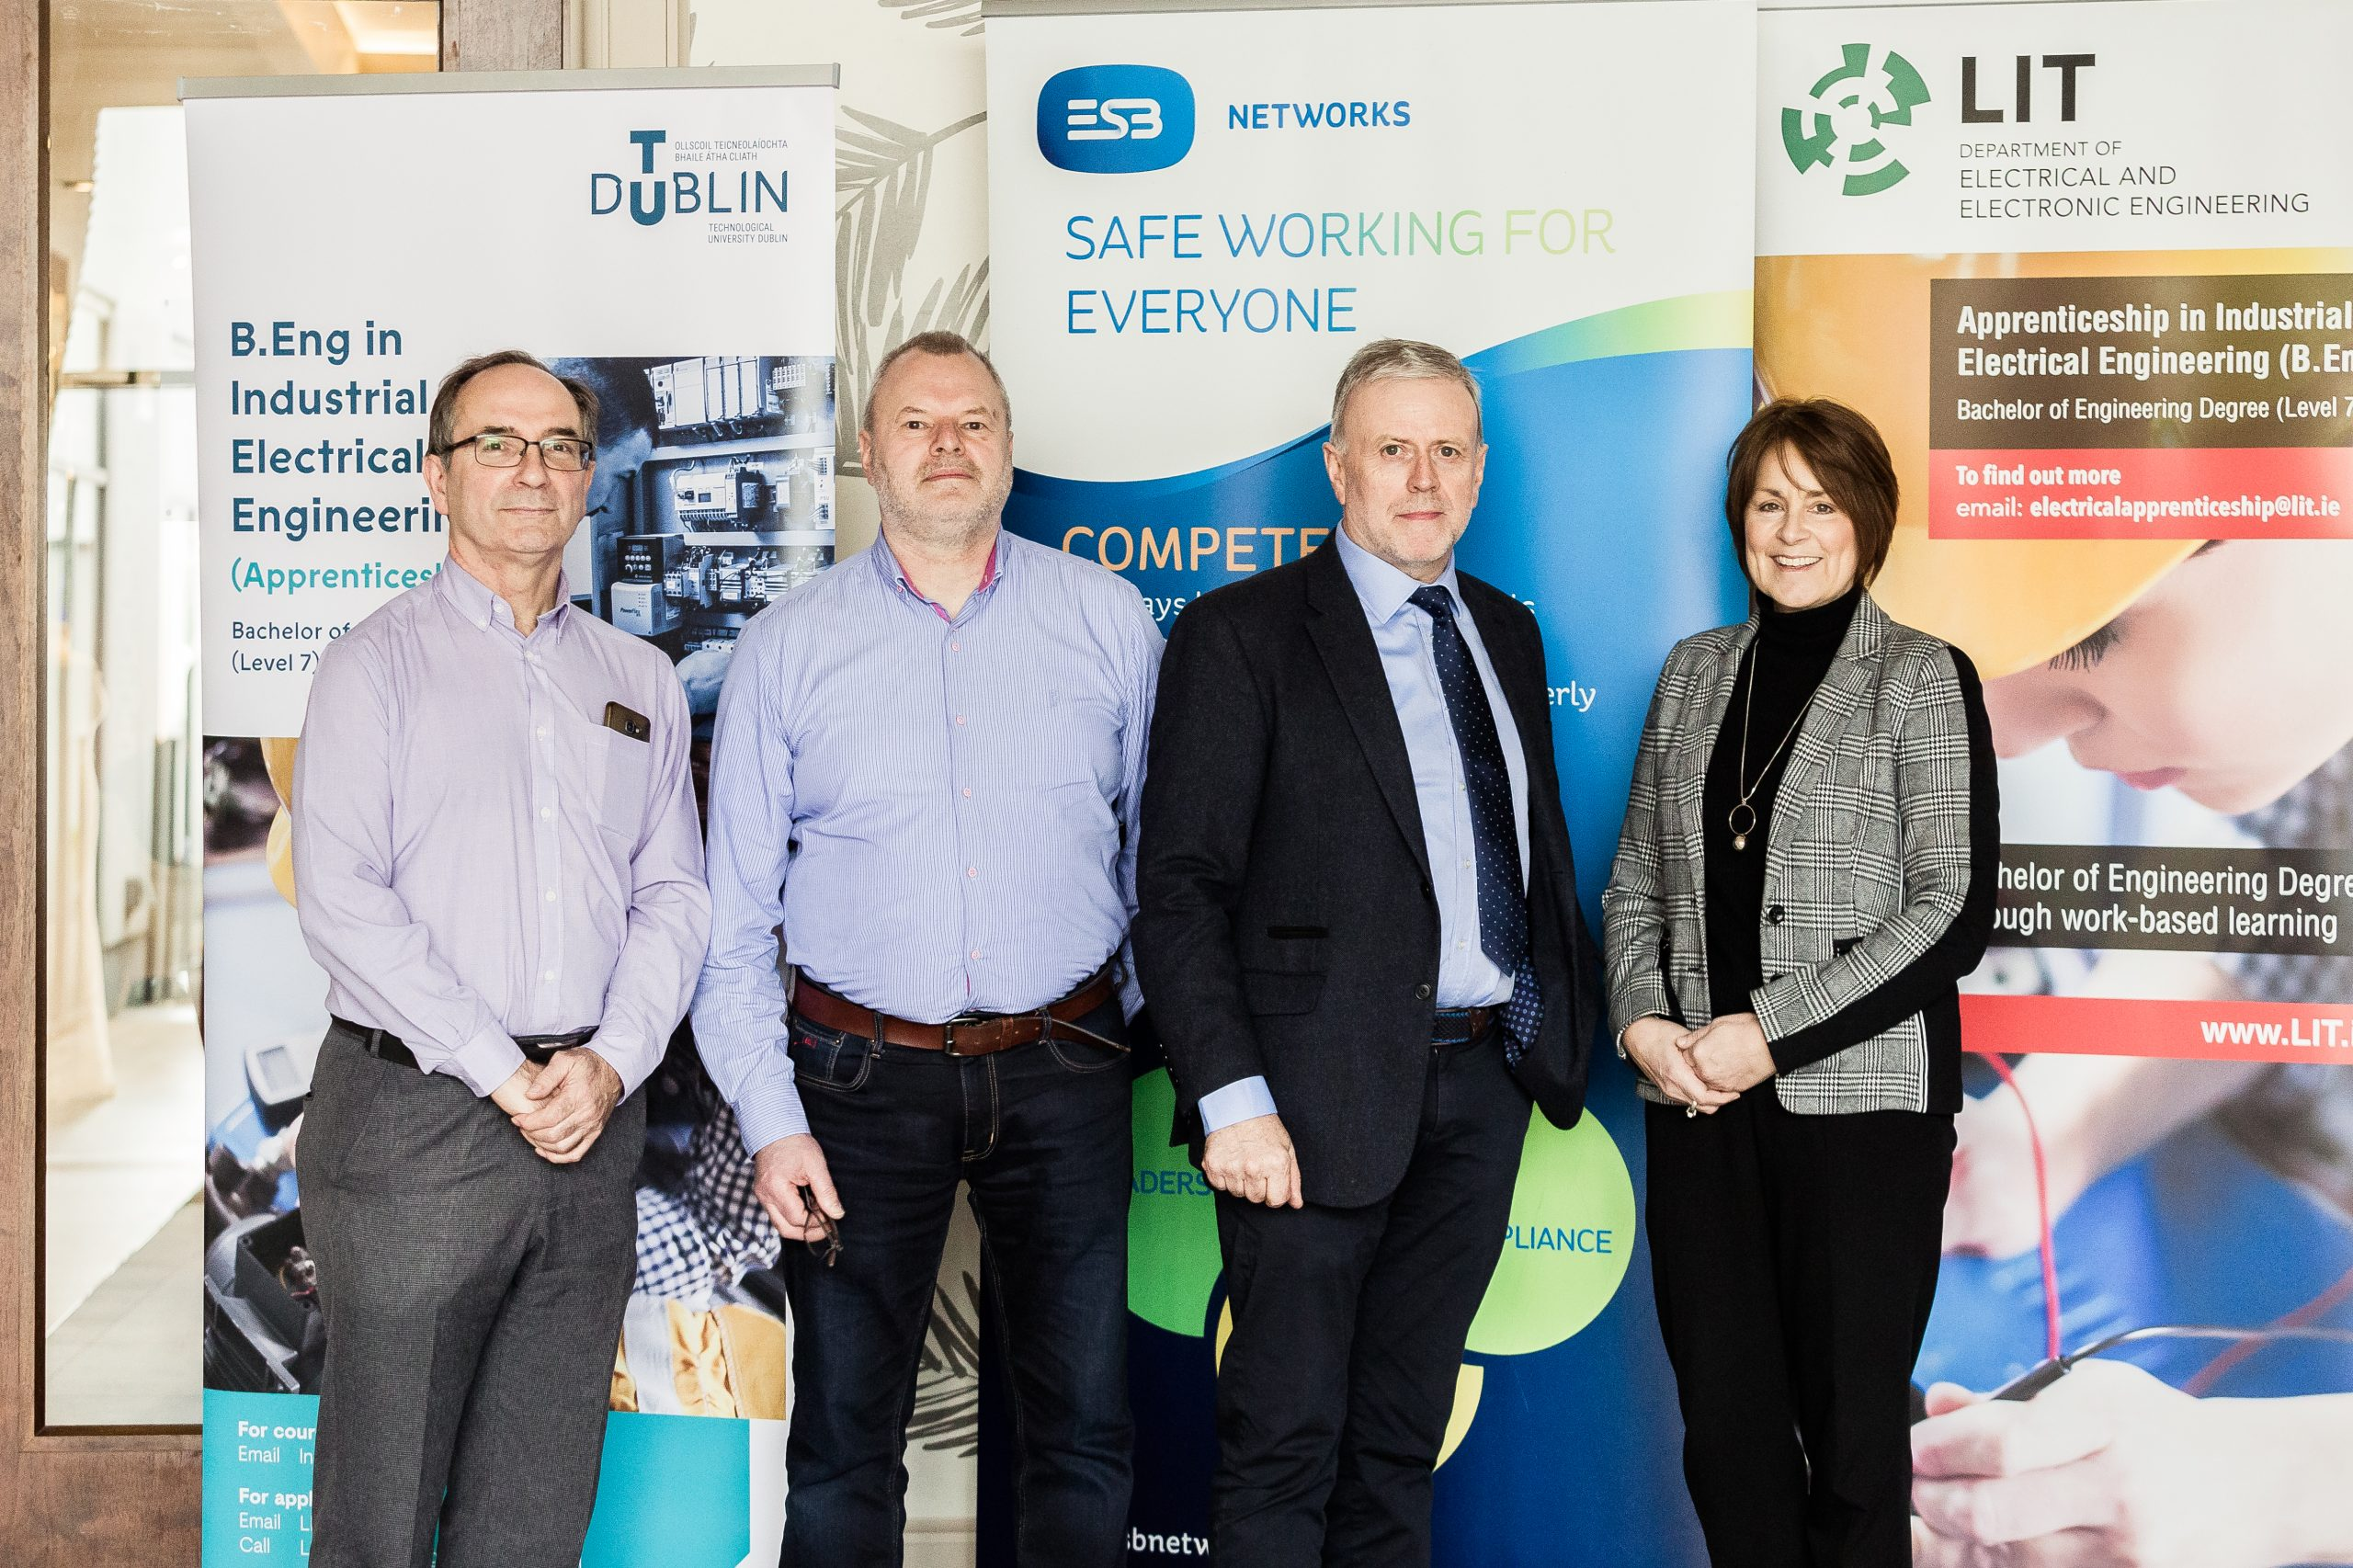 LIT and ESB Networks Collaboration